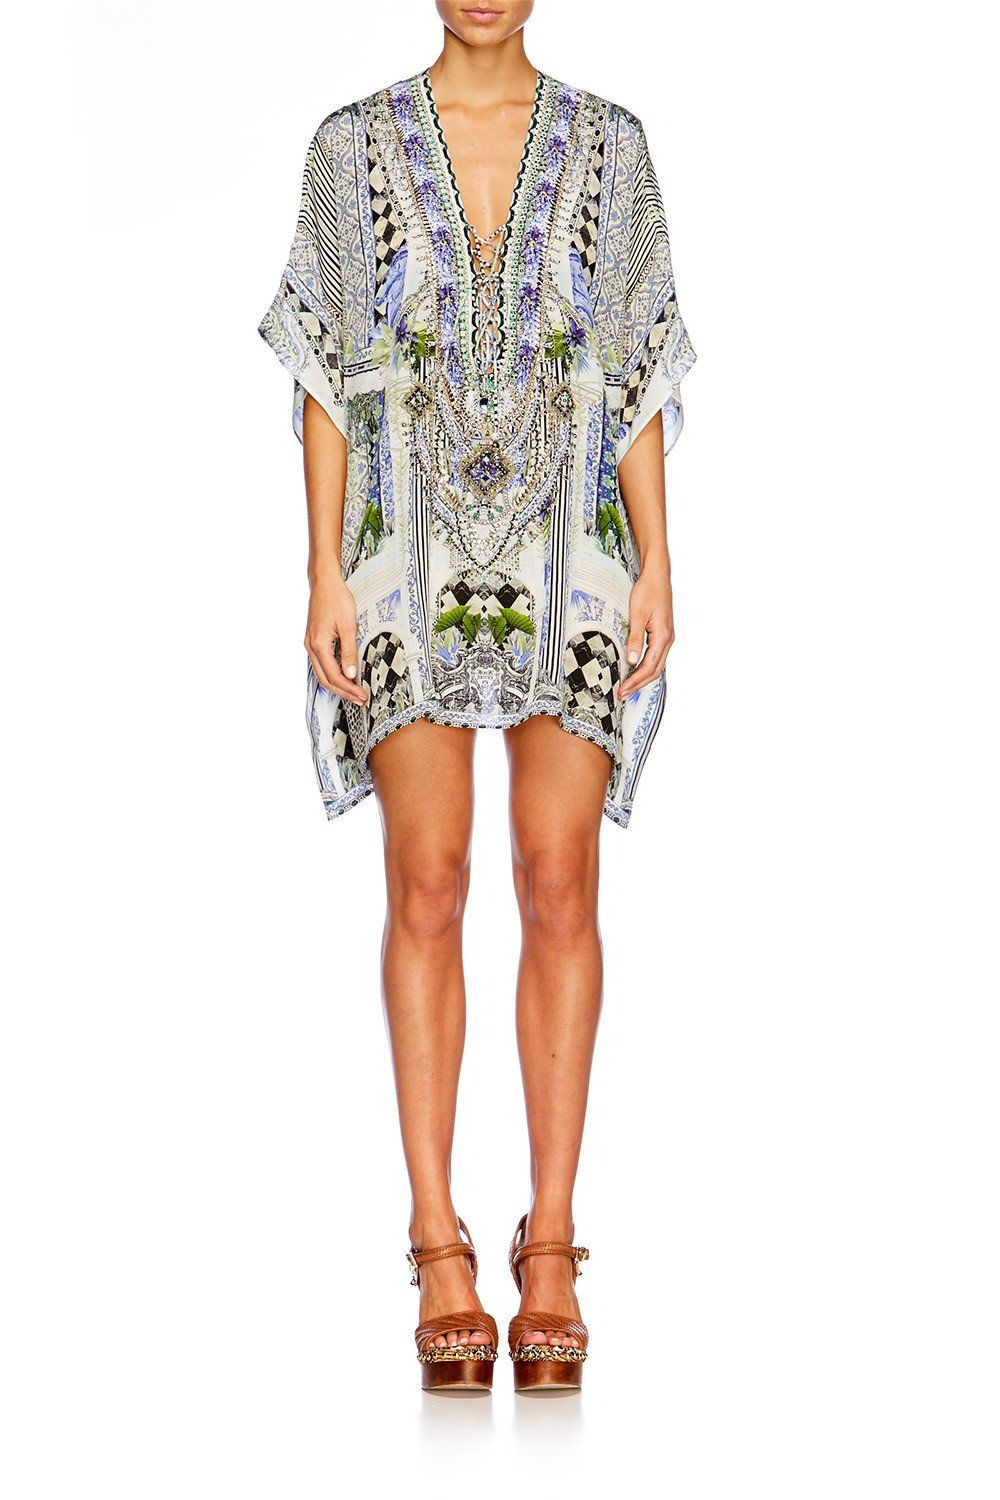 Camilla - The Sweet Escape Short Lace Up Kaftan